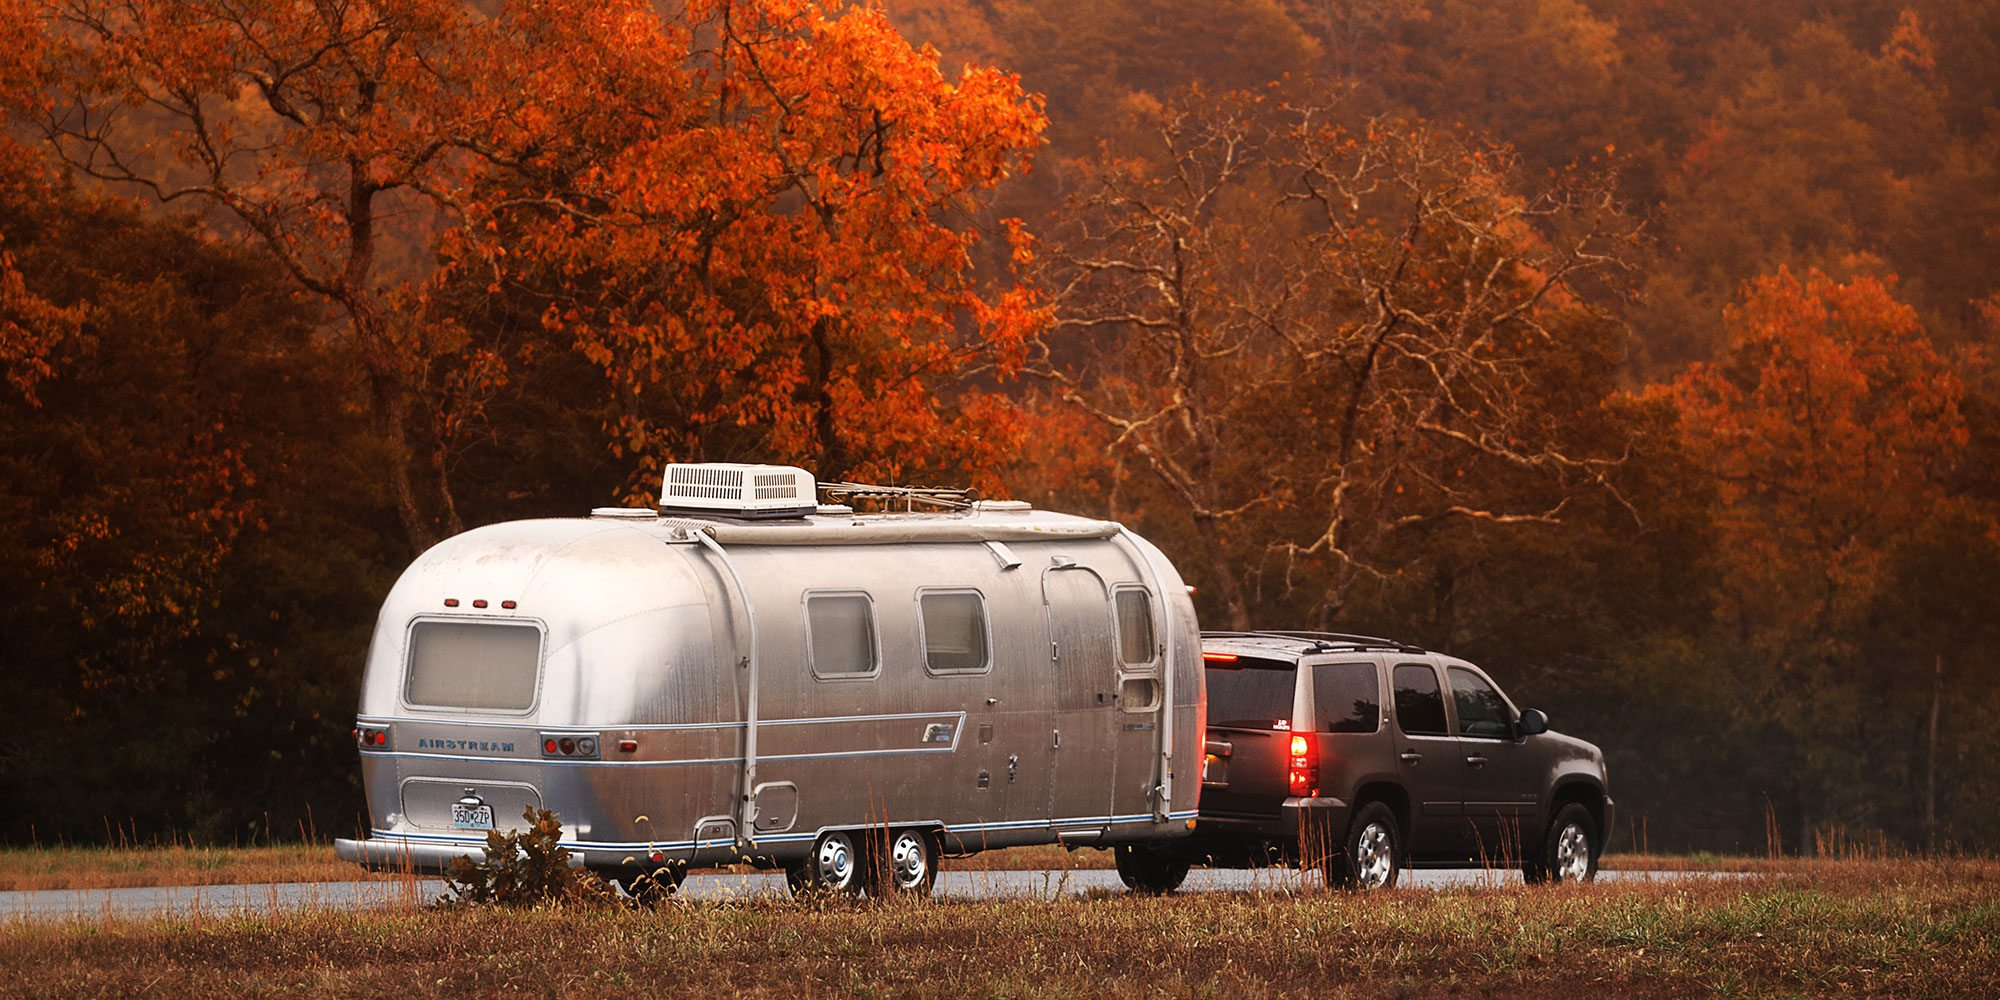 Silver Airstream being pulled down a scenic road with trees full of fall color